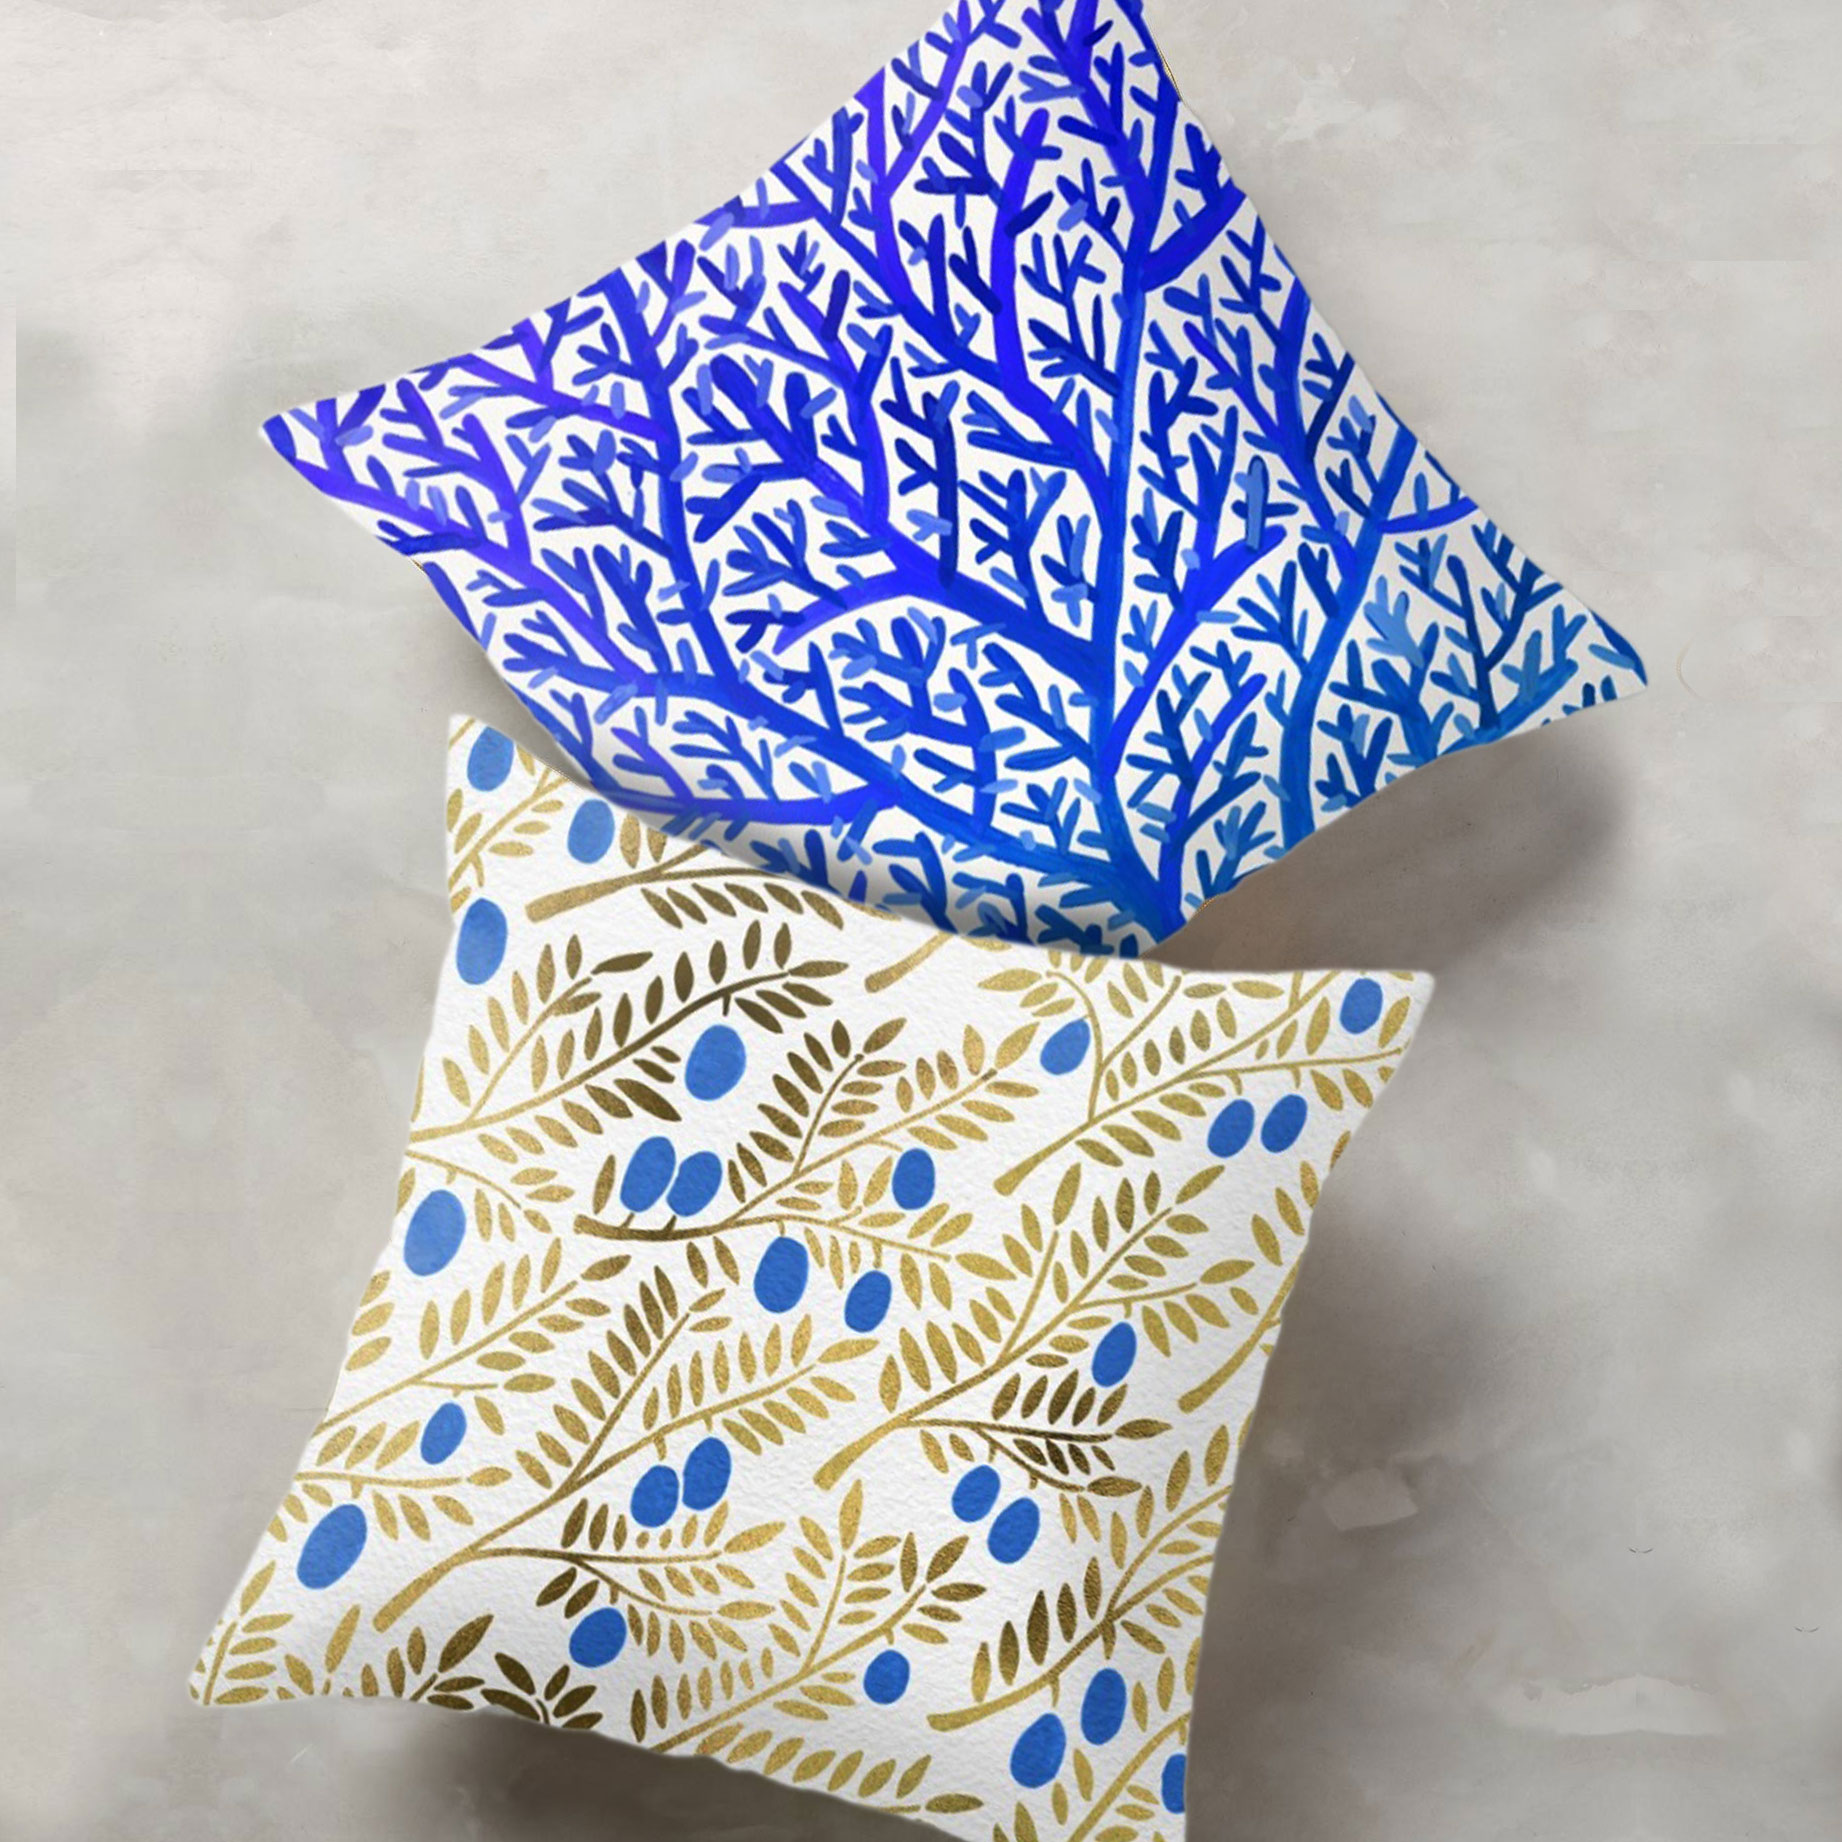 2-Pillows-BlueGold.jpg